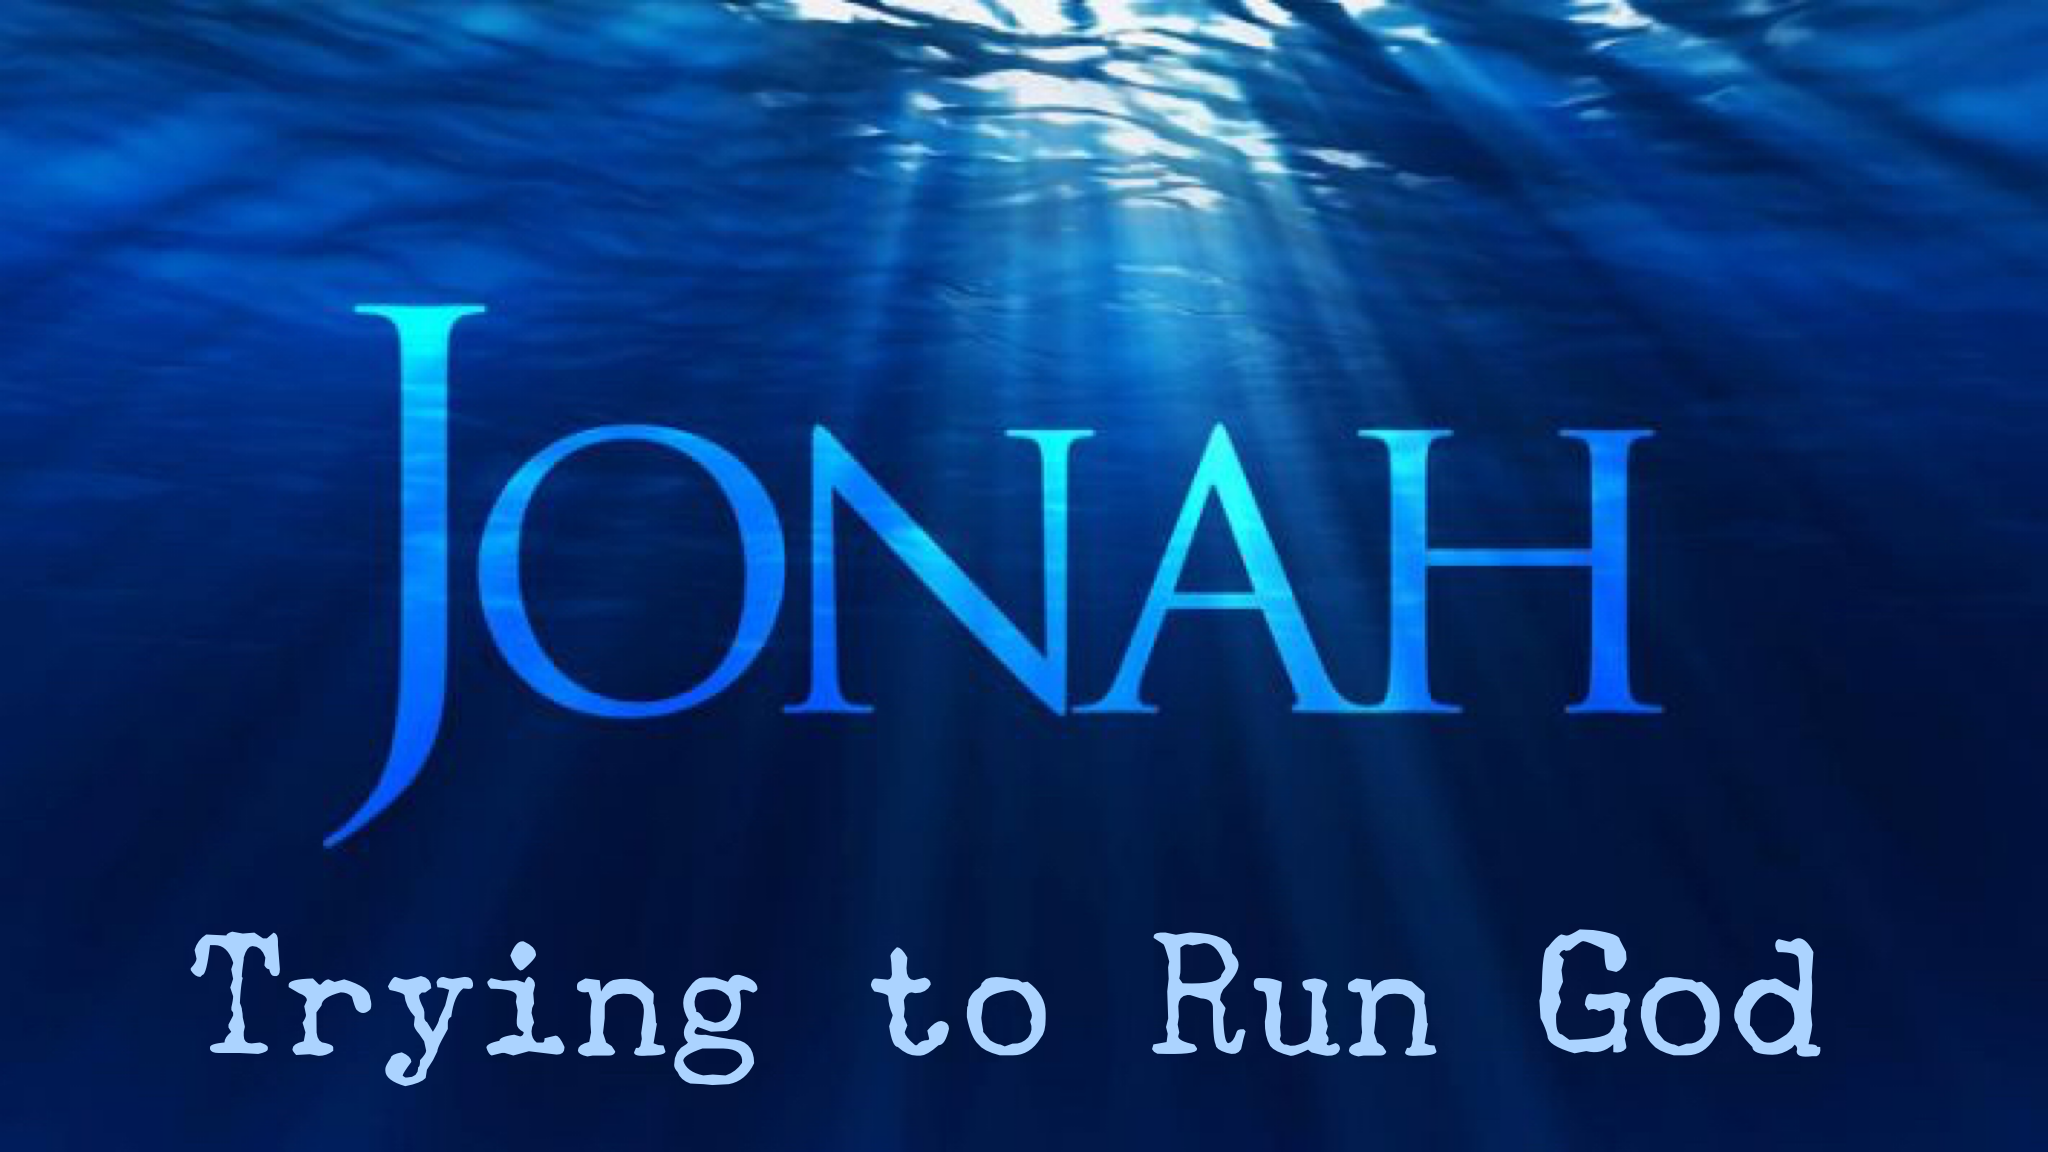 Jonah Trying to Run God.PNG